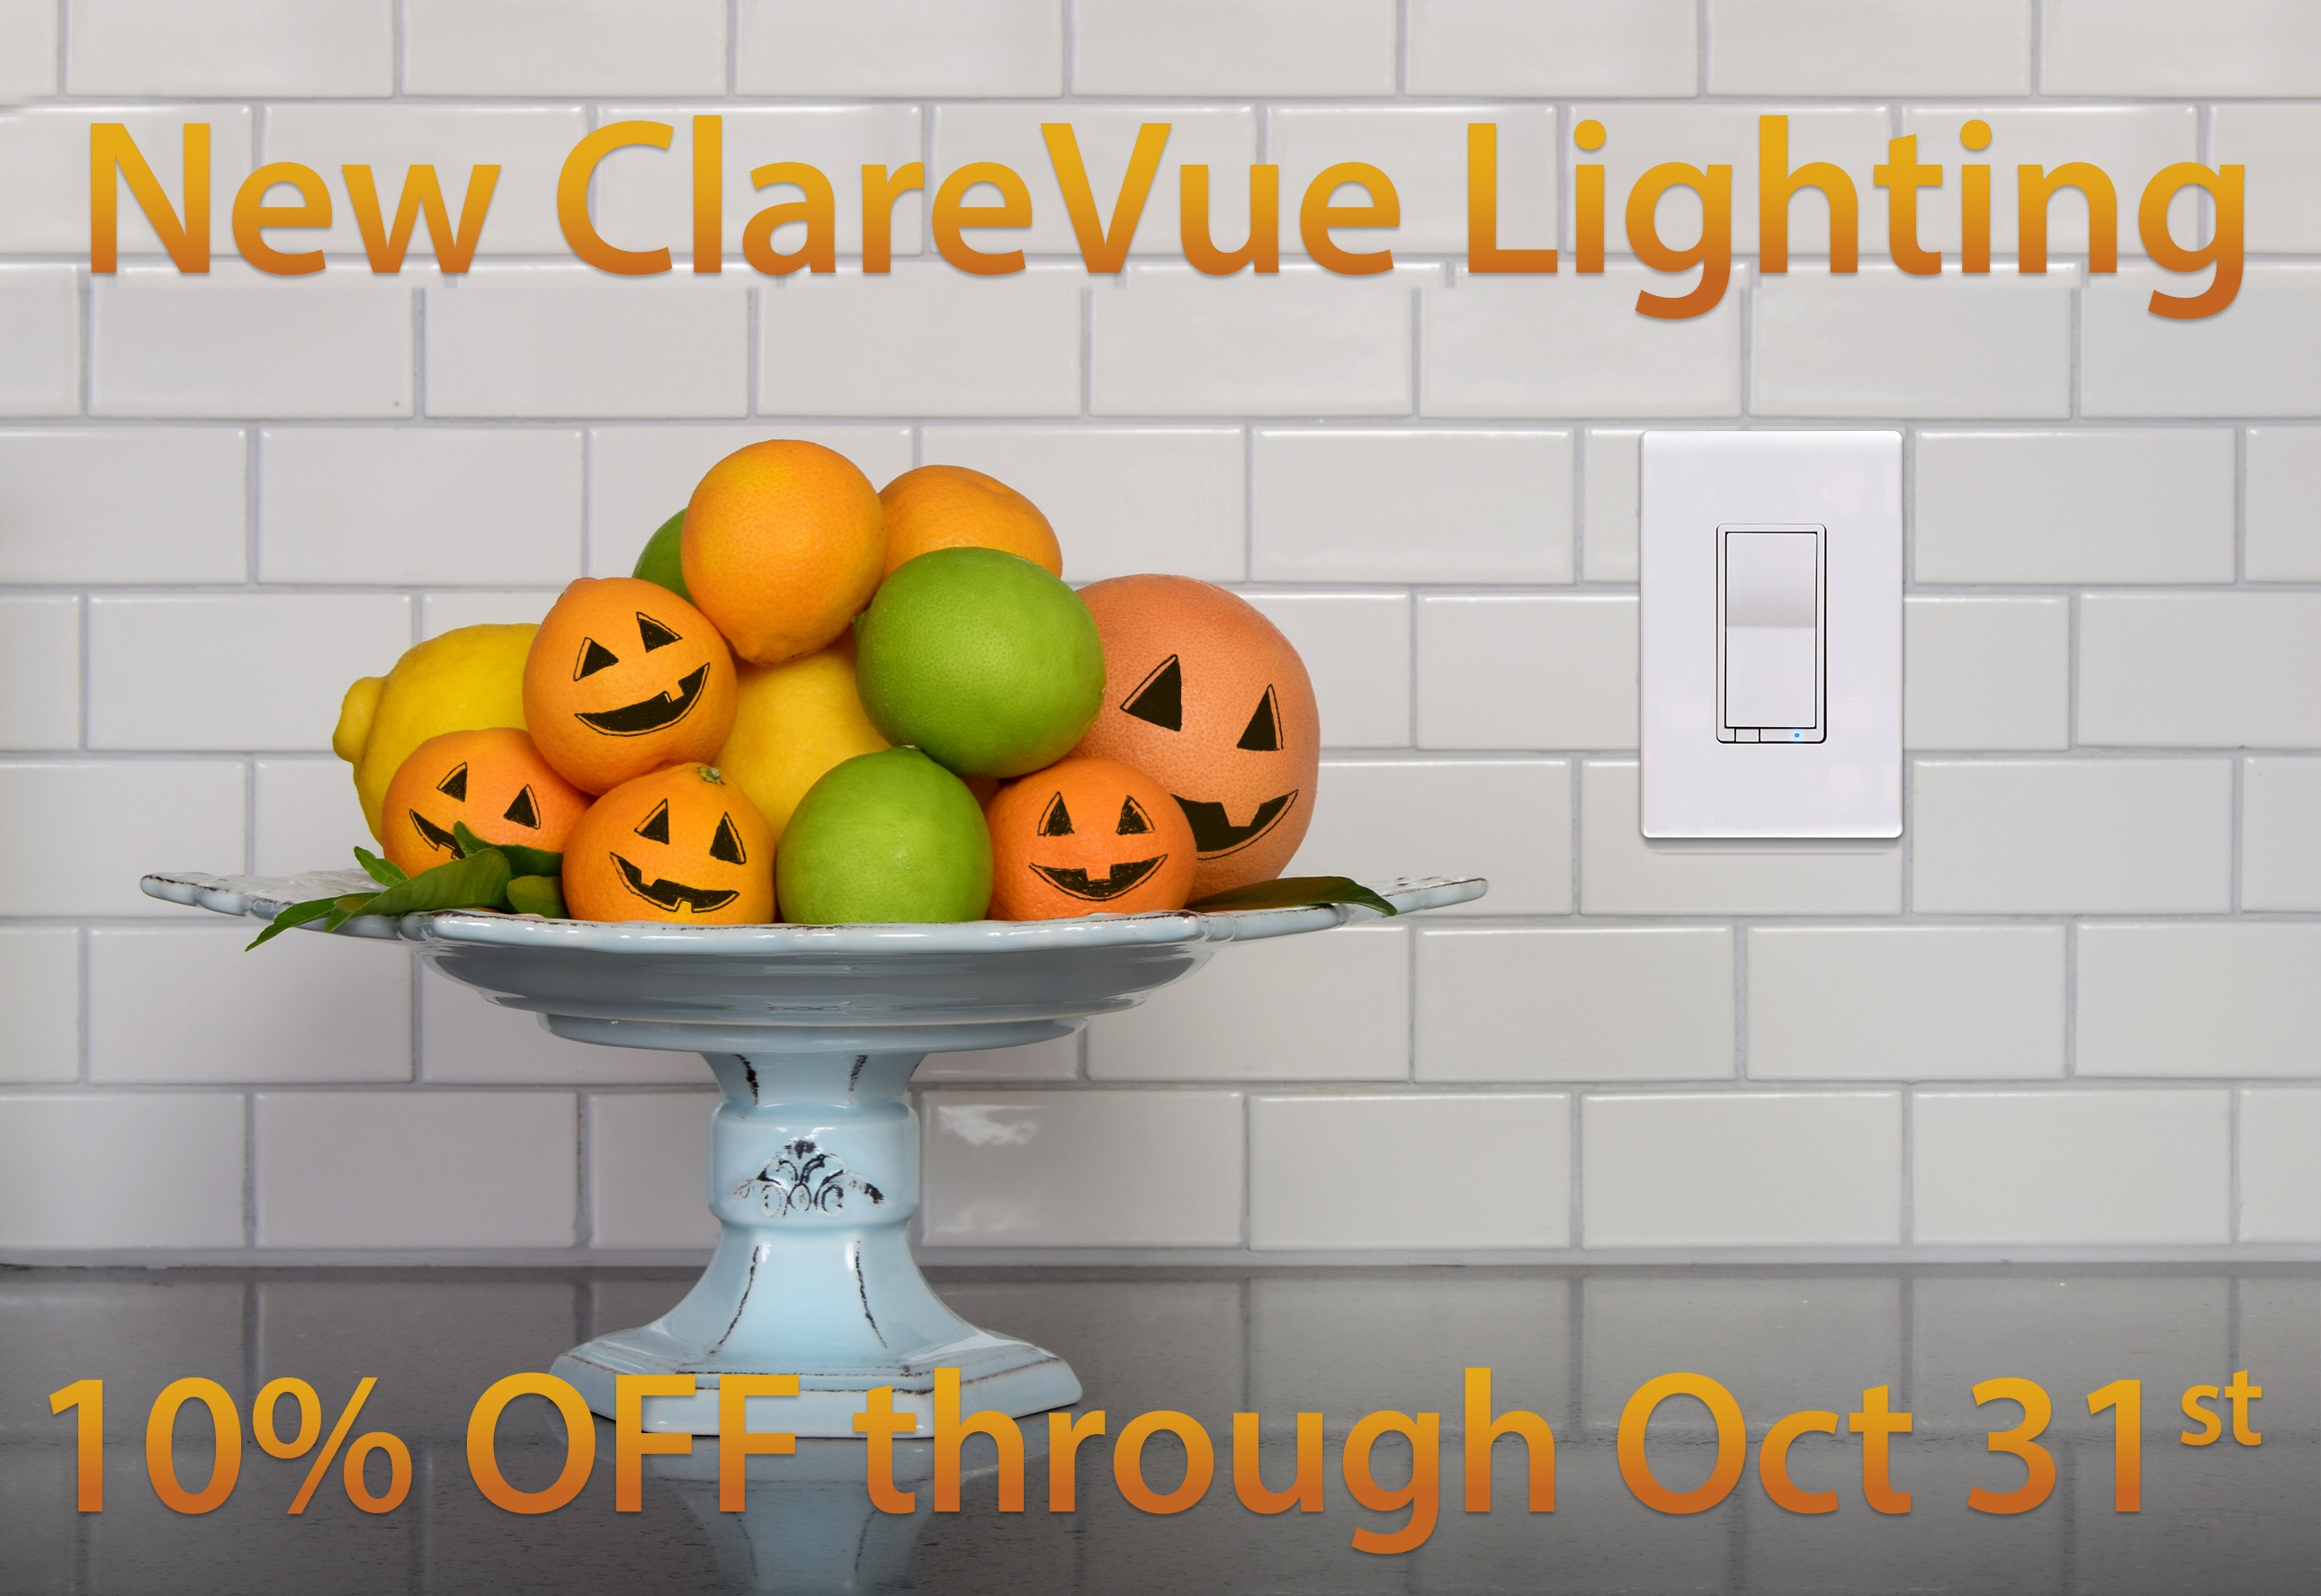 Take 10% OFF Our New ClareVue Lighting Products